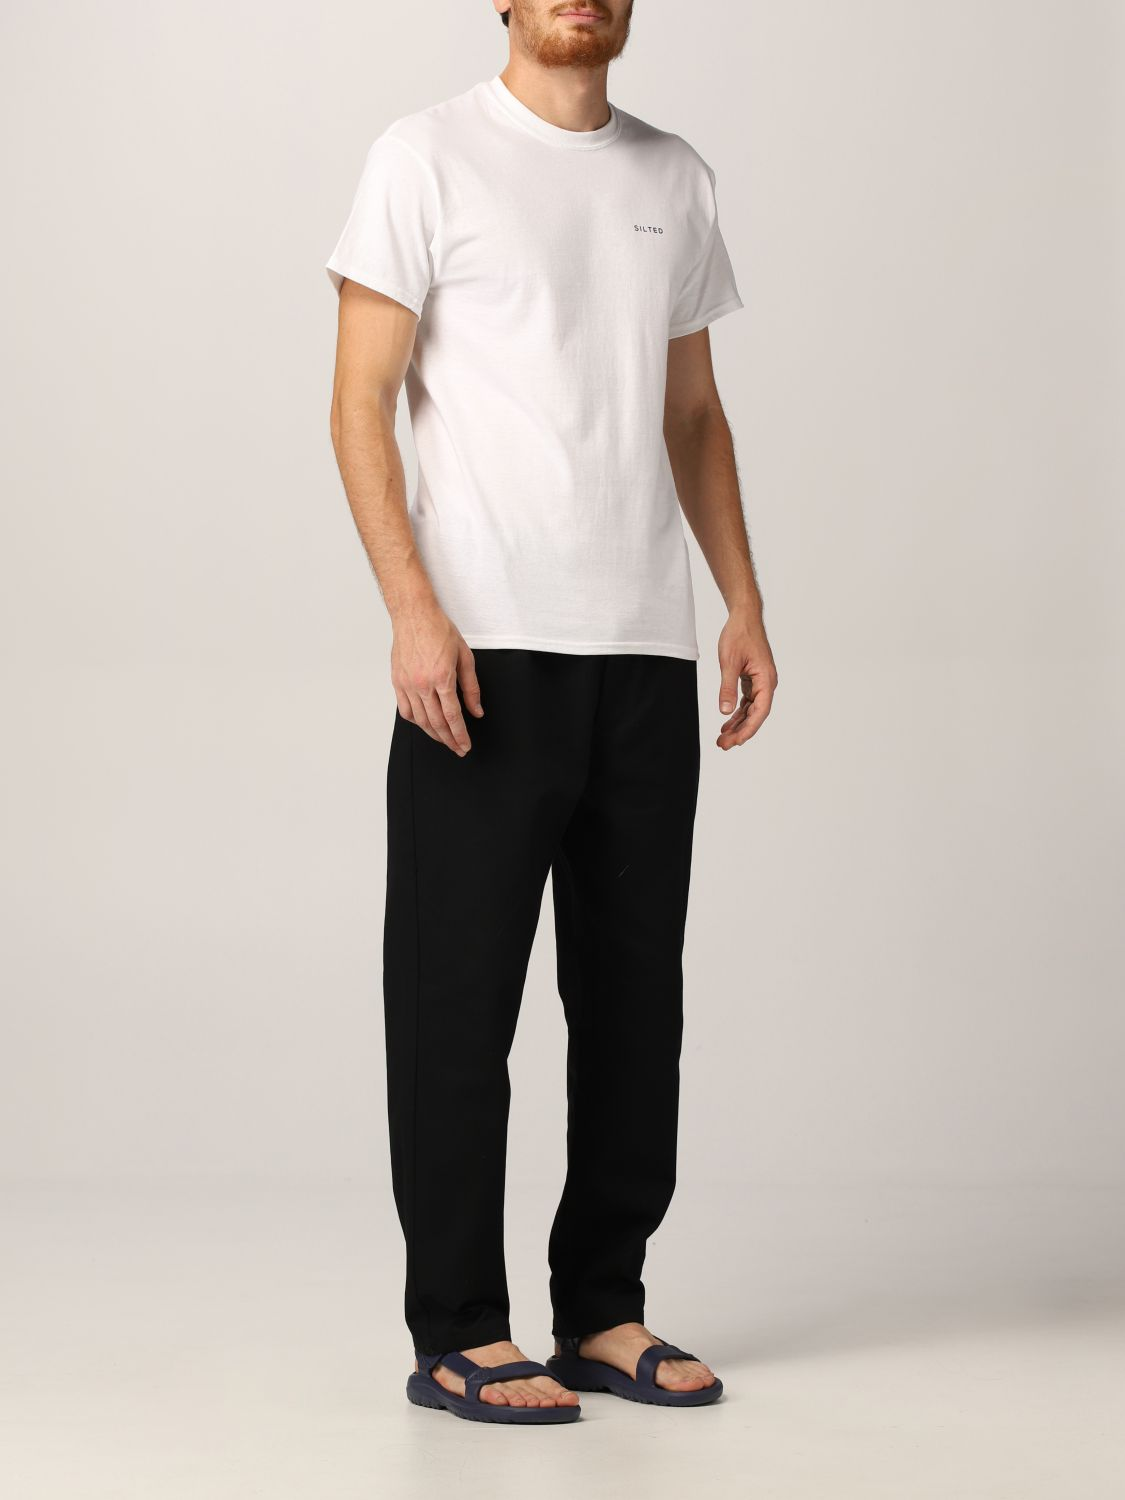 Camiseta Silted: Camiseta hombre Silted blanco 2